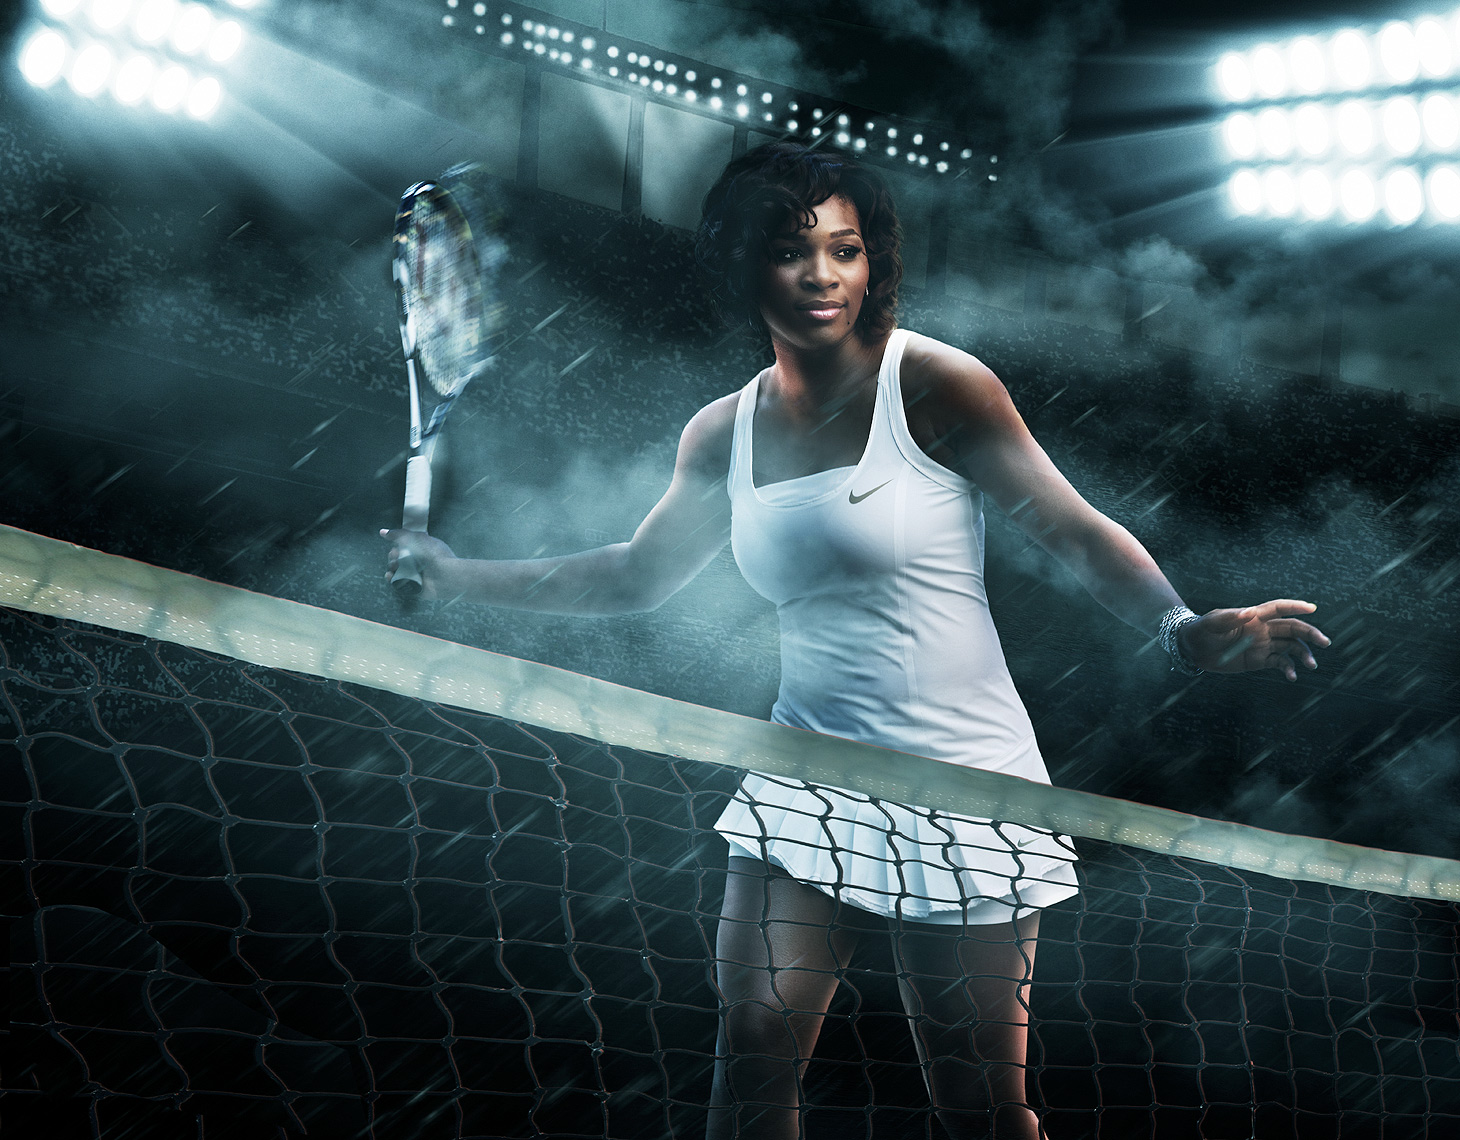 Serena-Williams-Nike-by-Robert-Ascroft.jpg